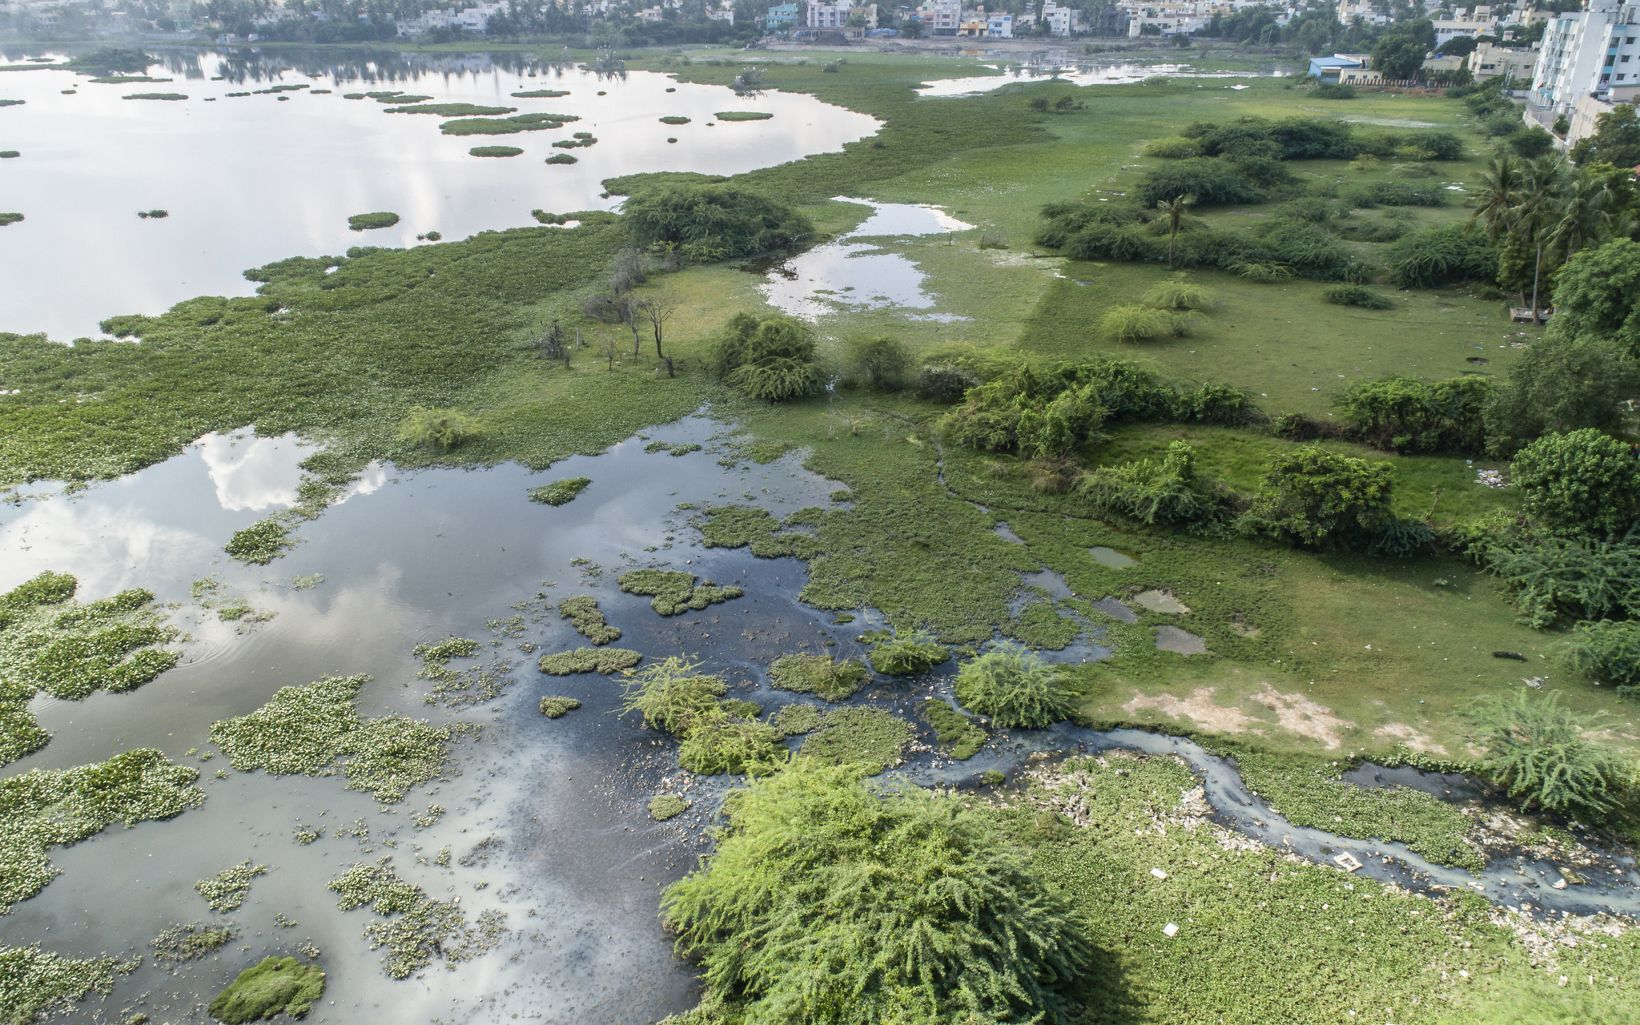 with accumulated silt, wastewater inlets flowing from near by houses, and invasive aquatic plants